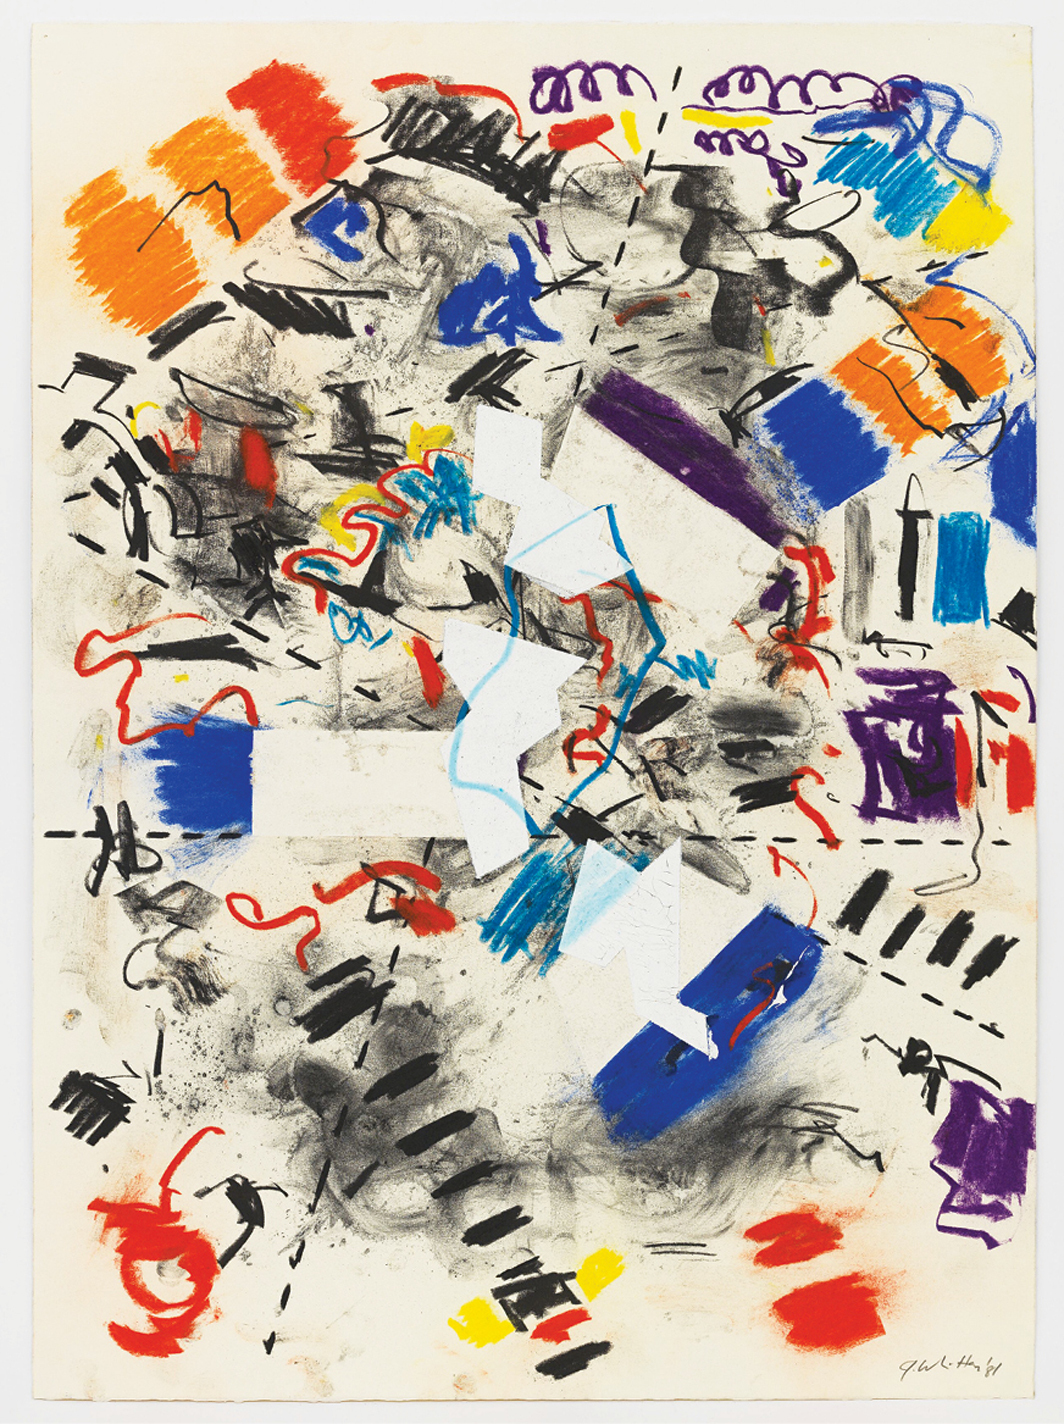 "Jack Whitten, Geometric Collusion #1, 1981, acrylic, pastel, and charcoal on paper, 26 1/8 × 19"". © Jack Whitten Estate."